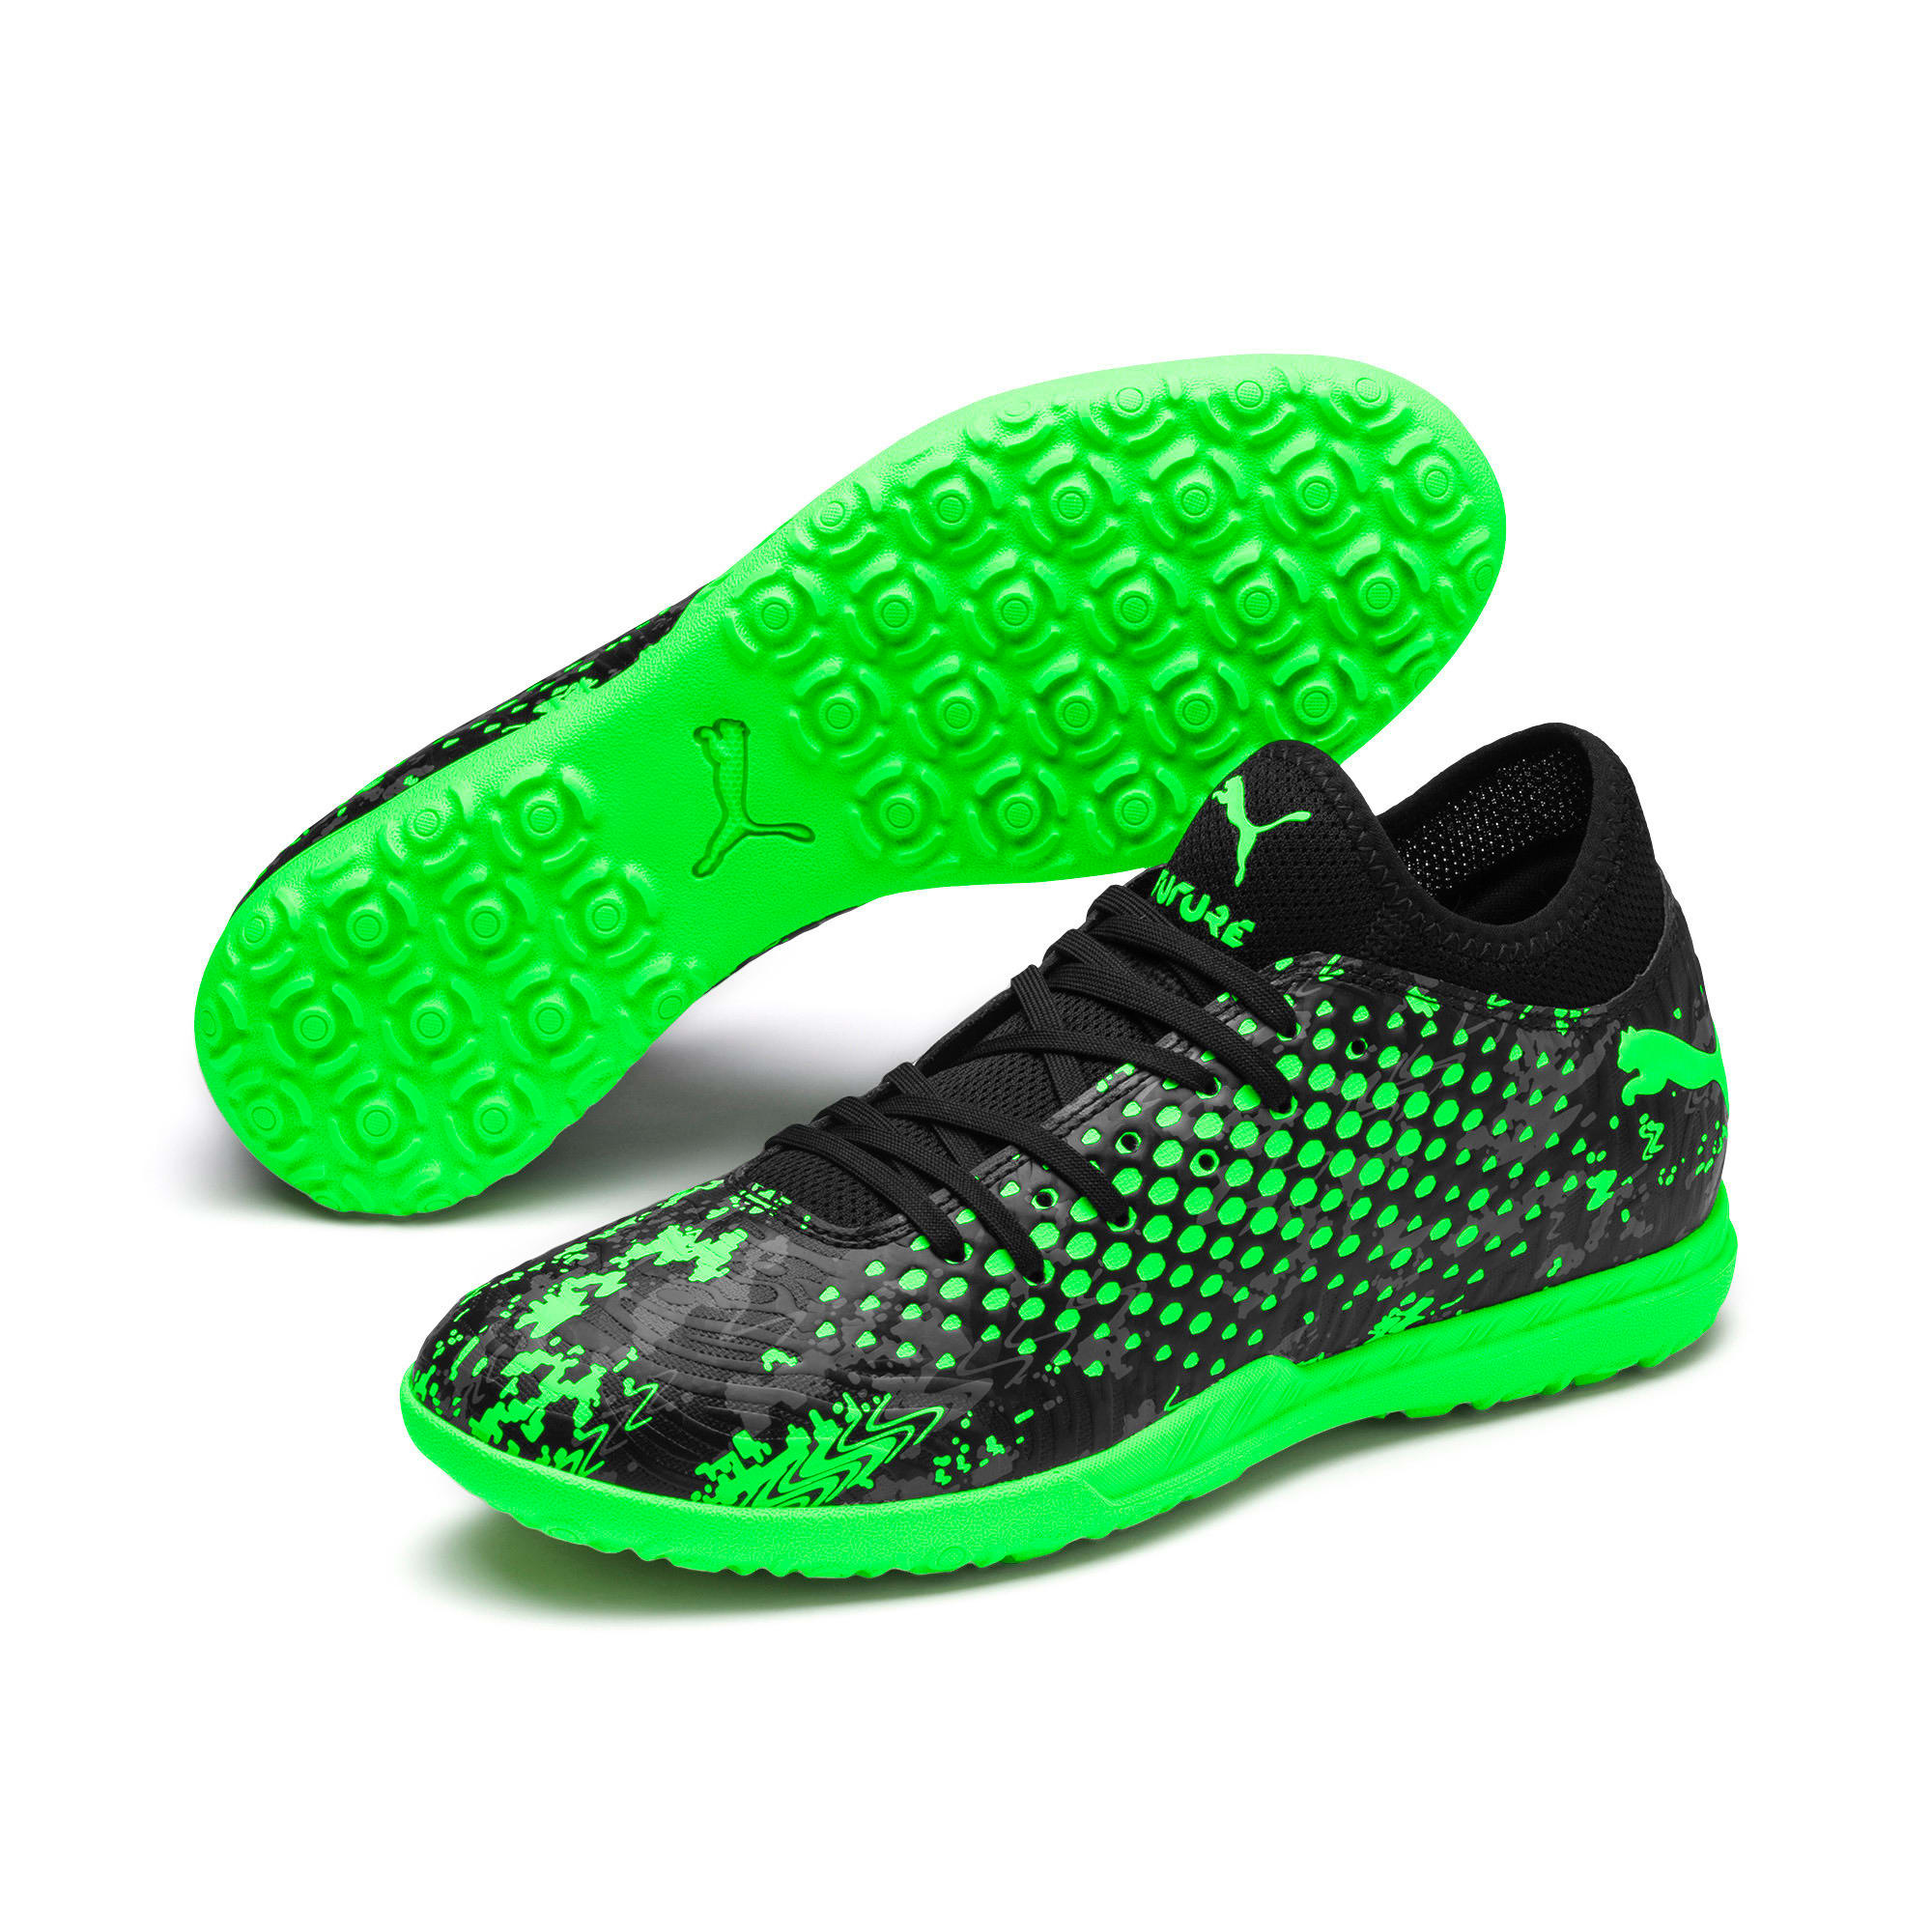 Thumbnail 2 of FUTURE 19.4 TT Men's Football Boots, Black-Gray-Green Gecko, medium